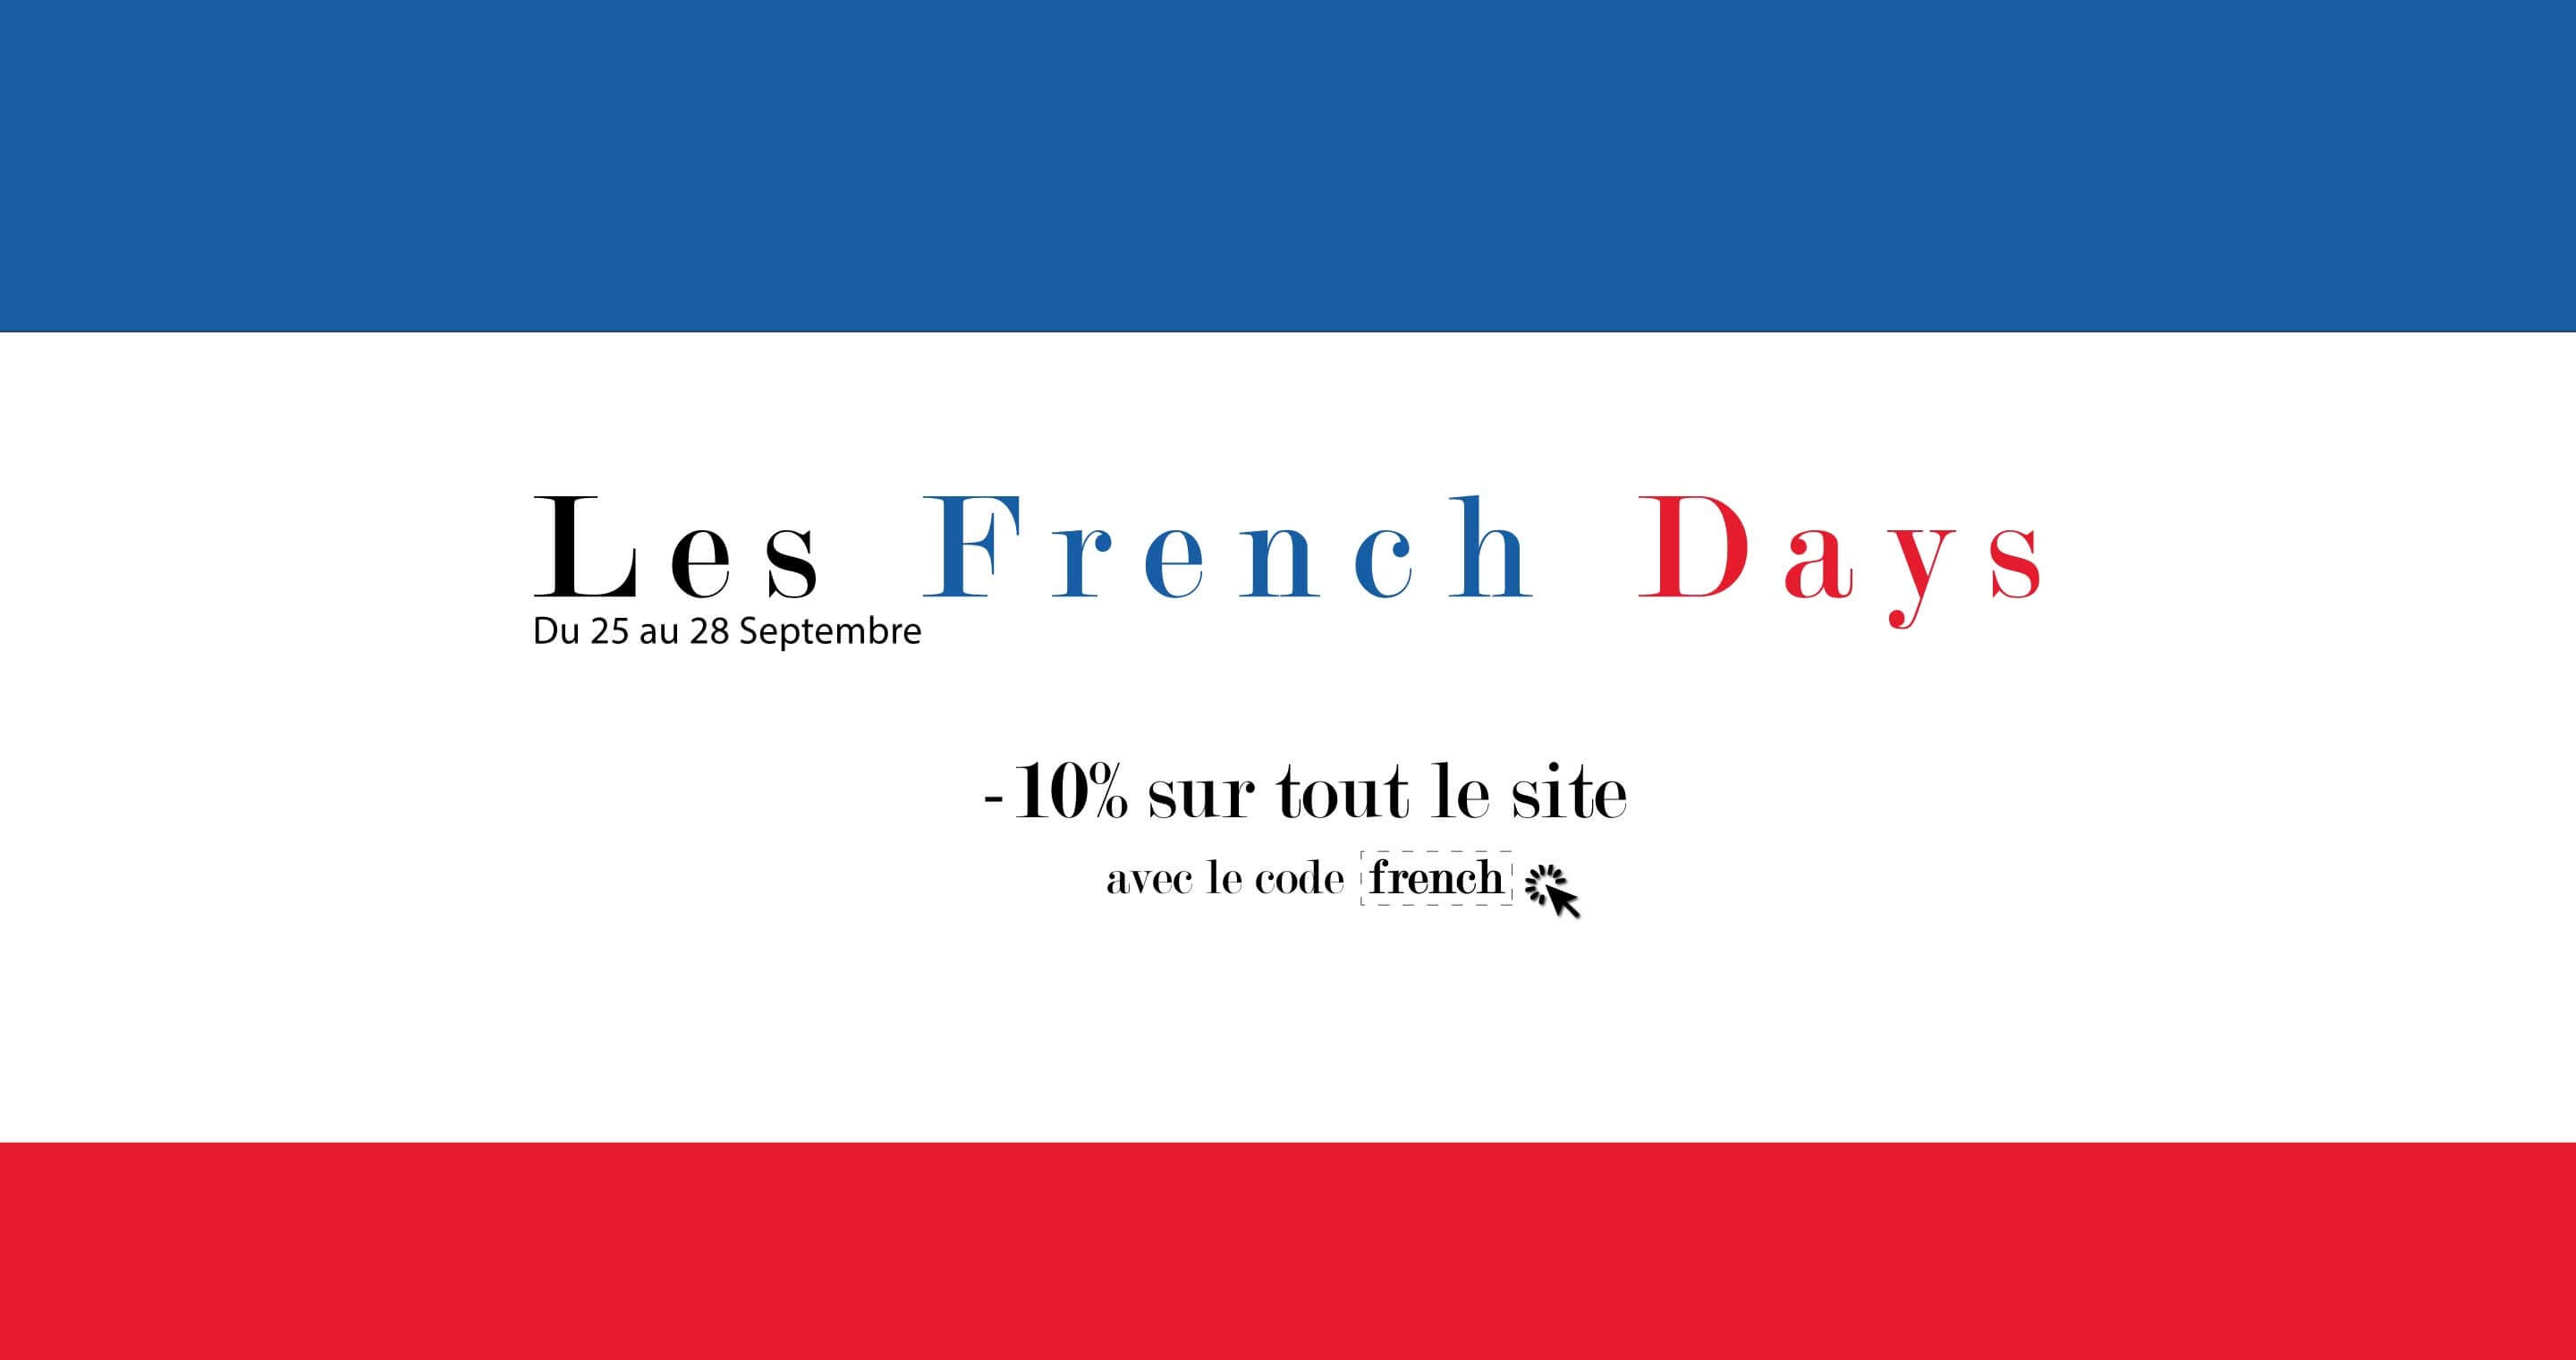 French days: -10% sur tout